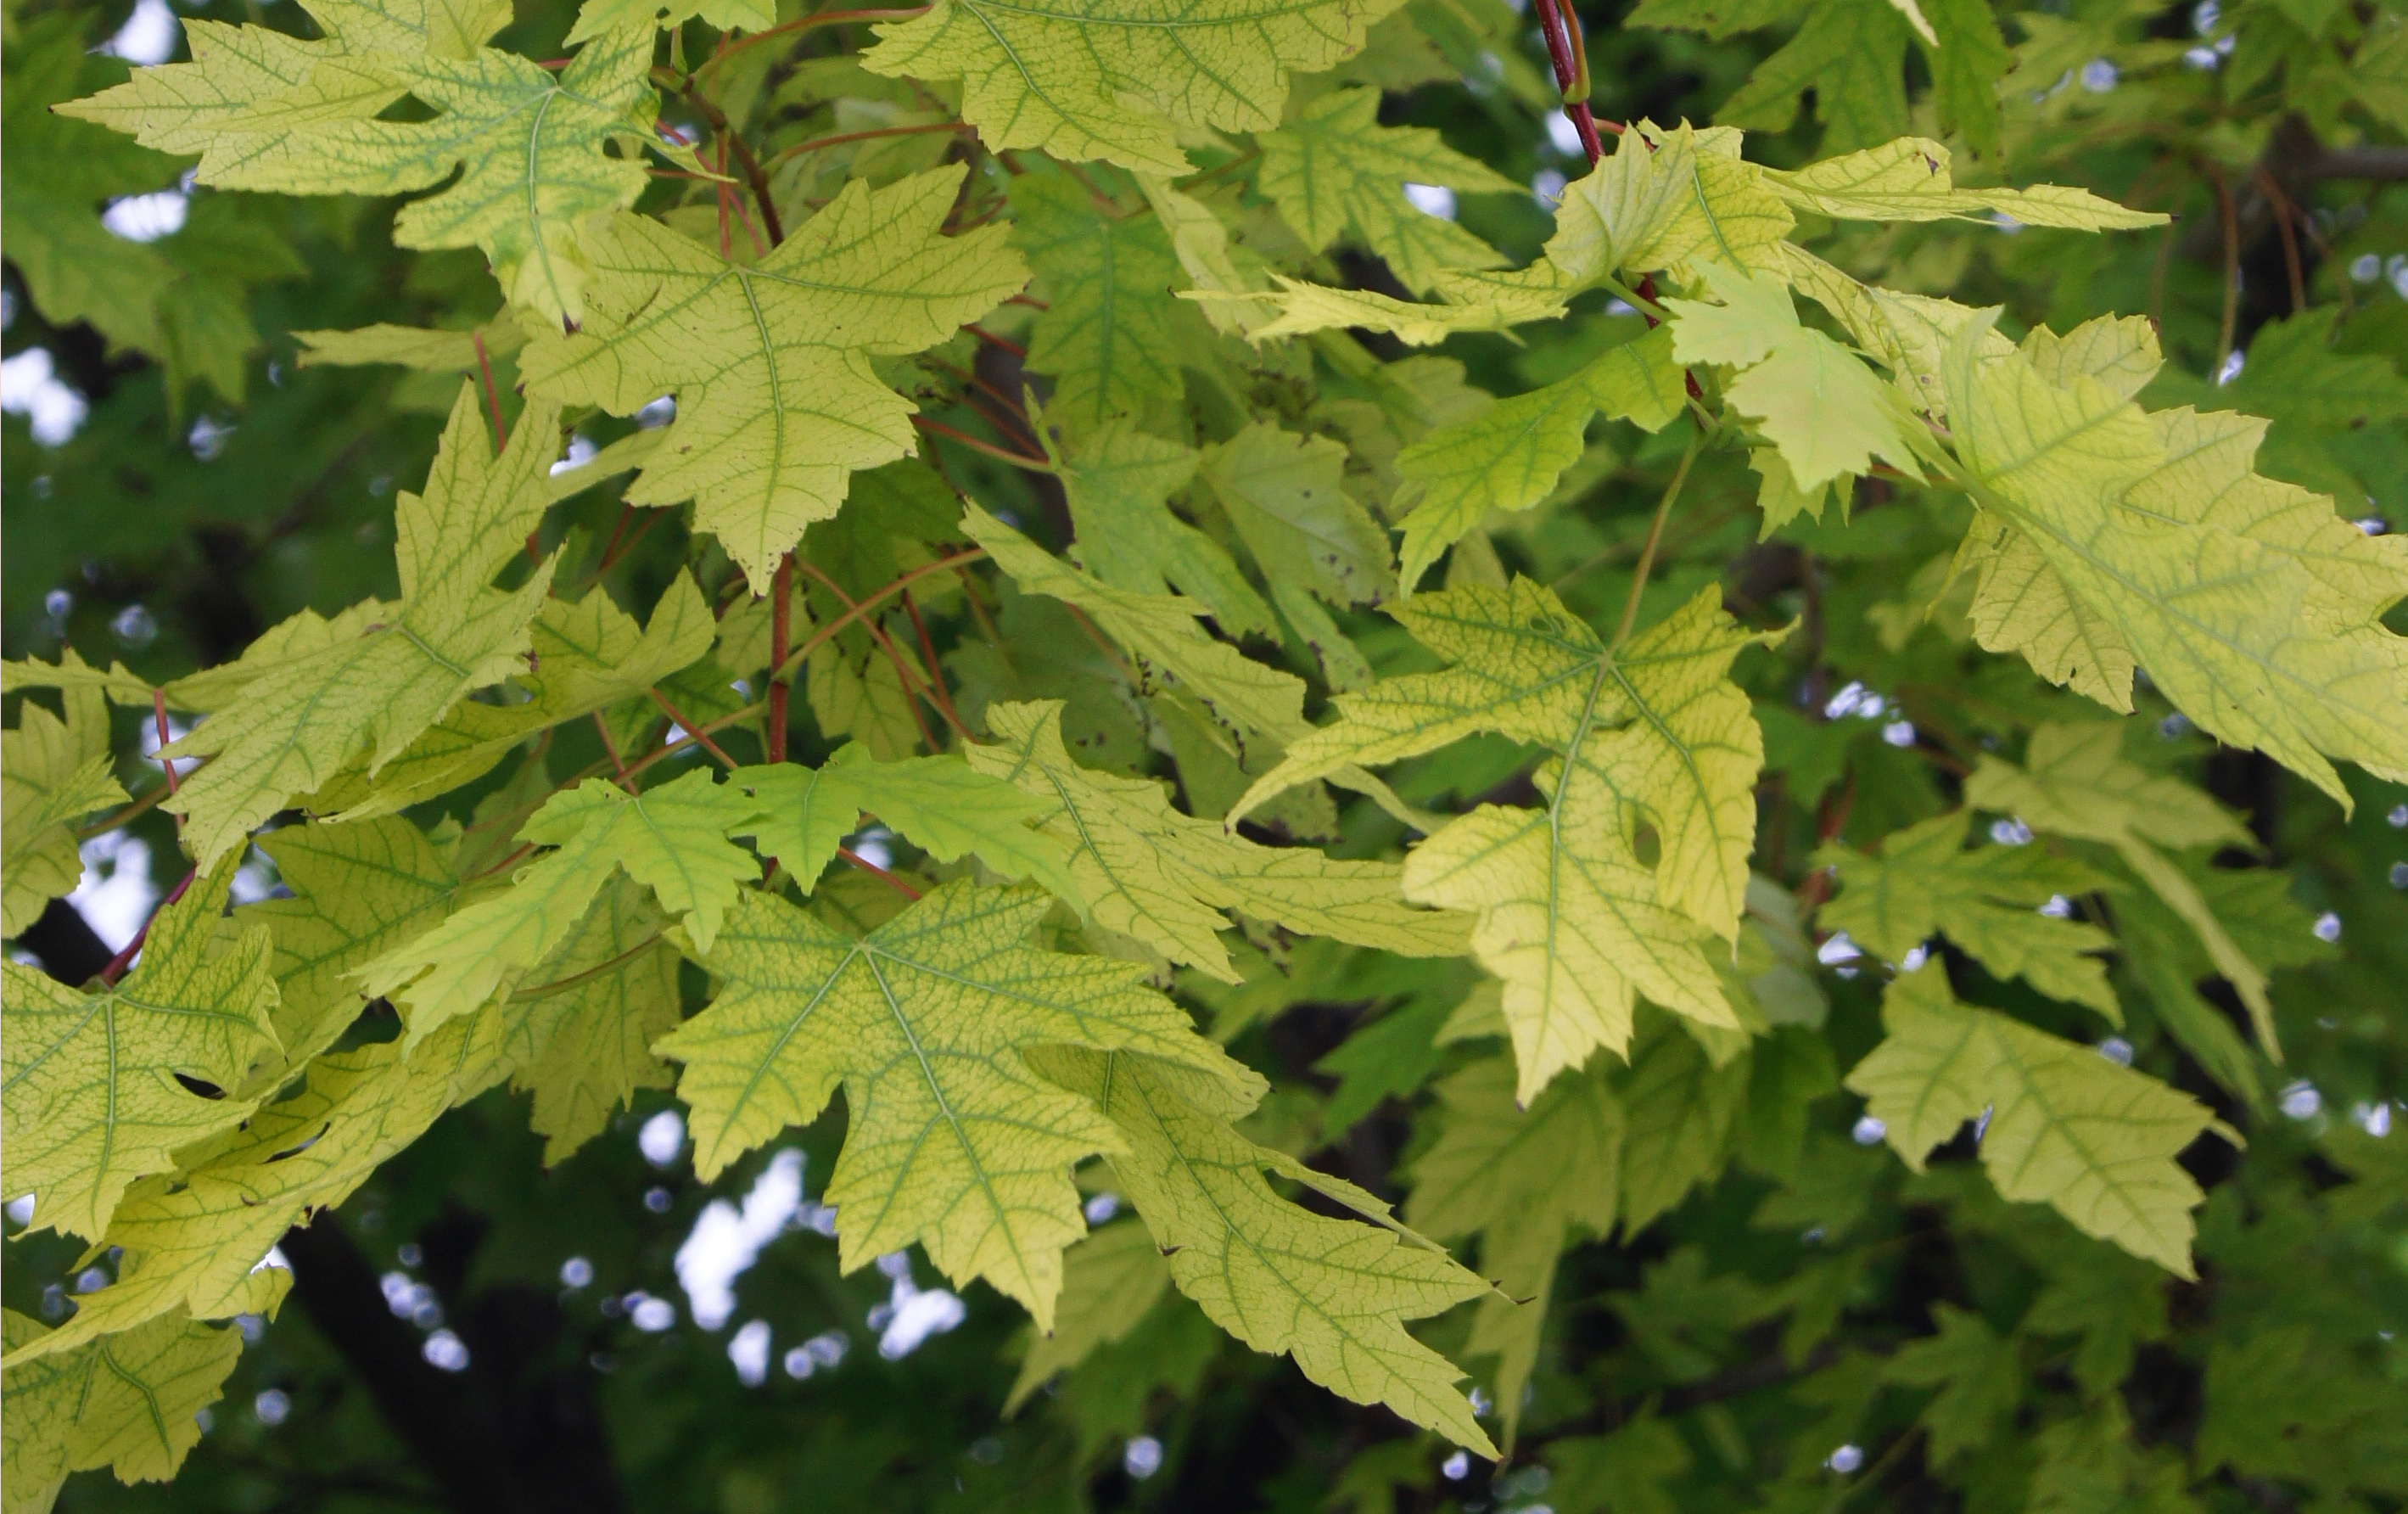 Autumn Blaze maple, iron chlorosis, close-up of leaf, NDSU campus